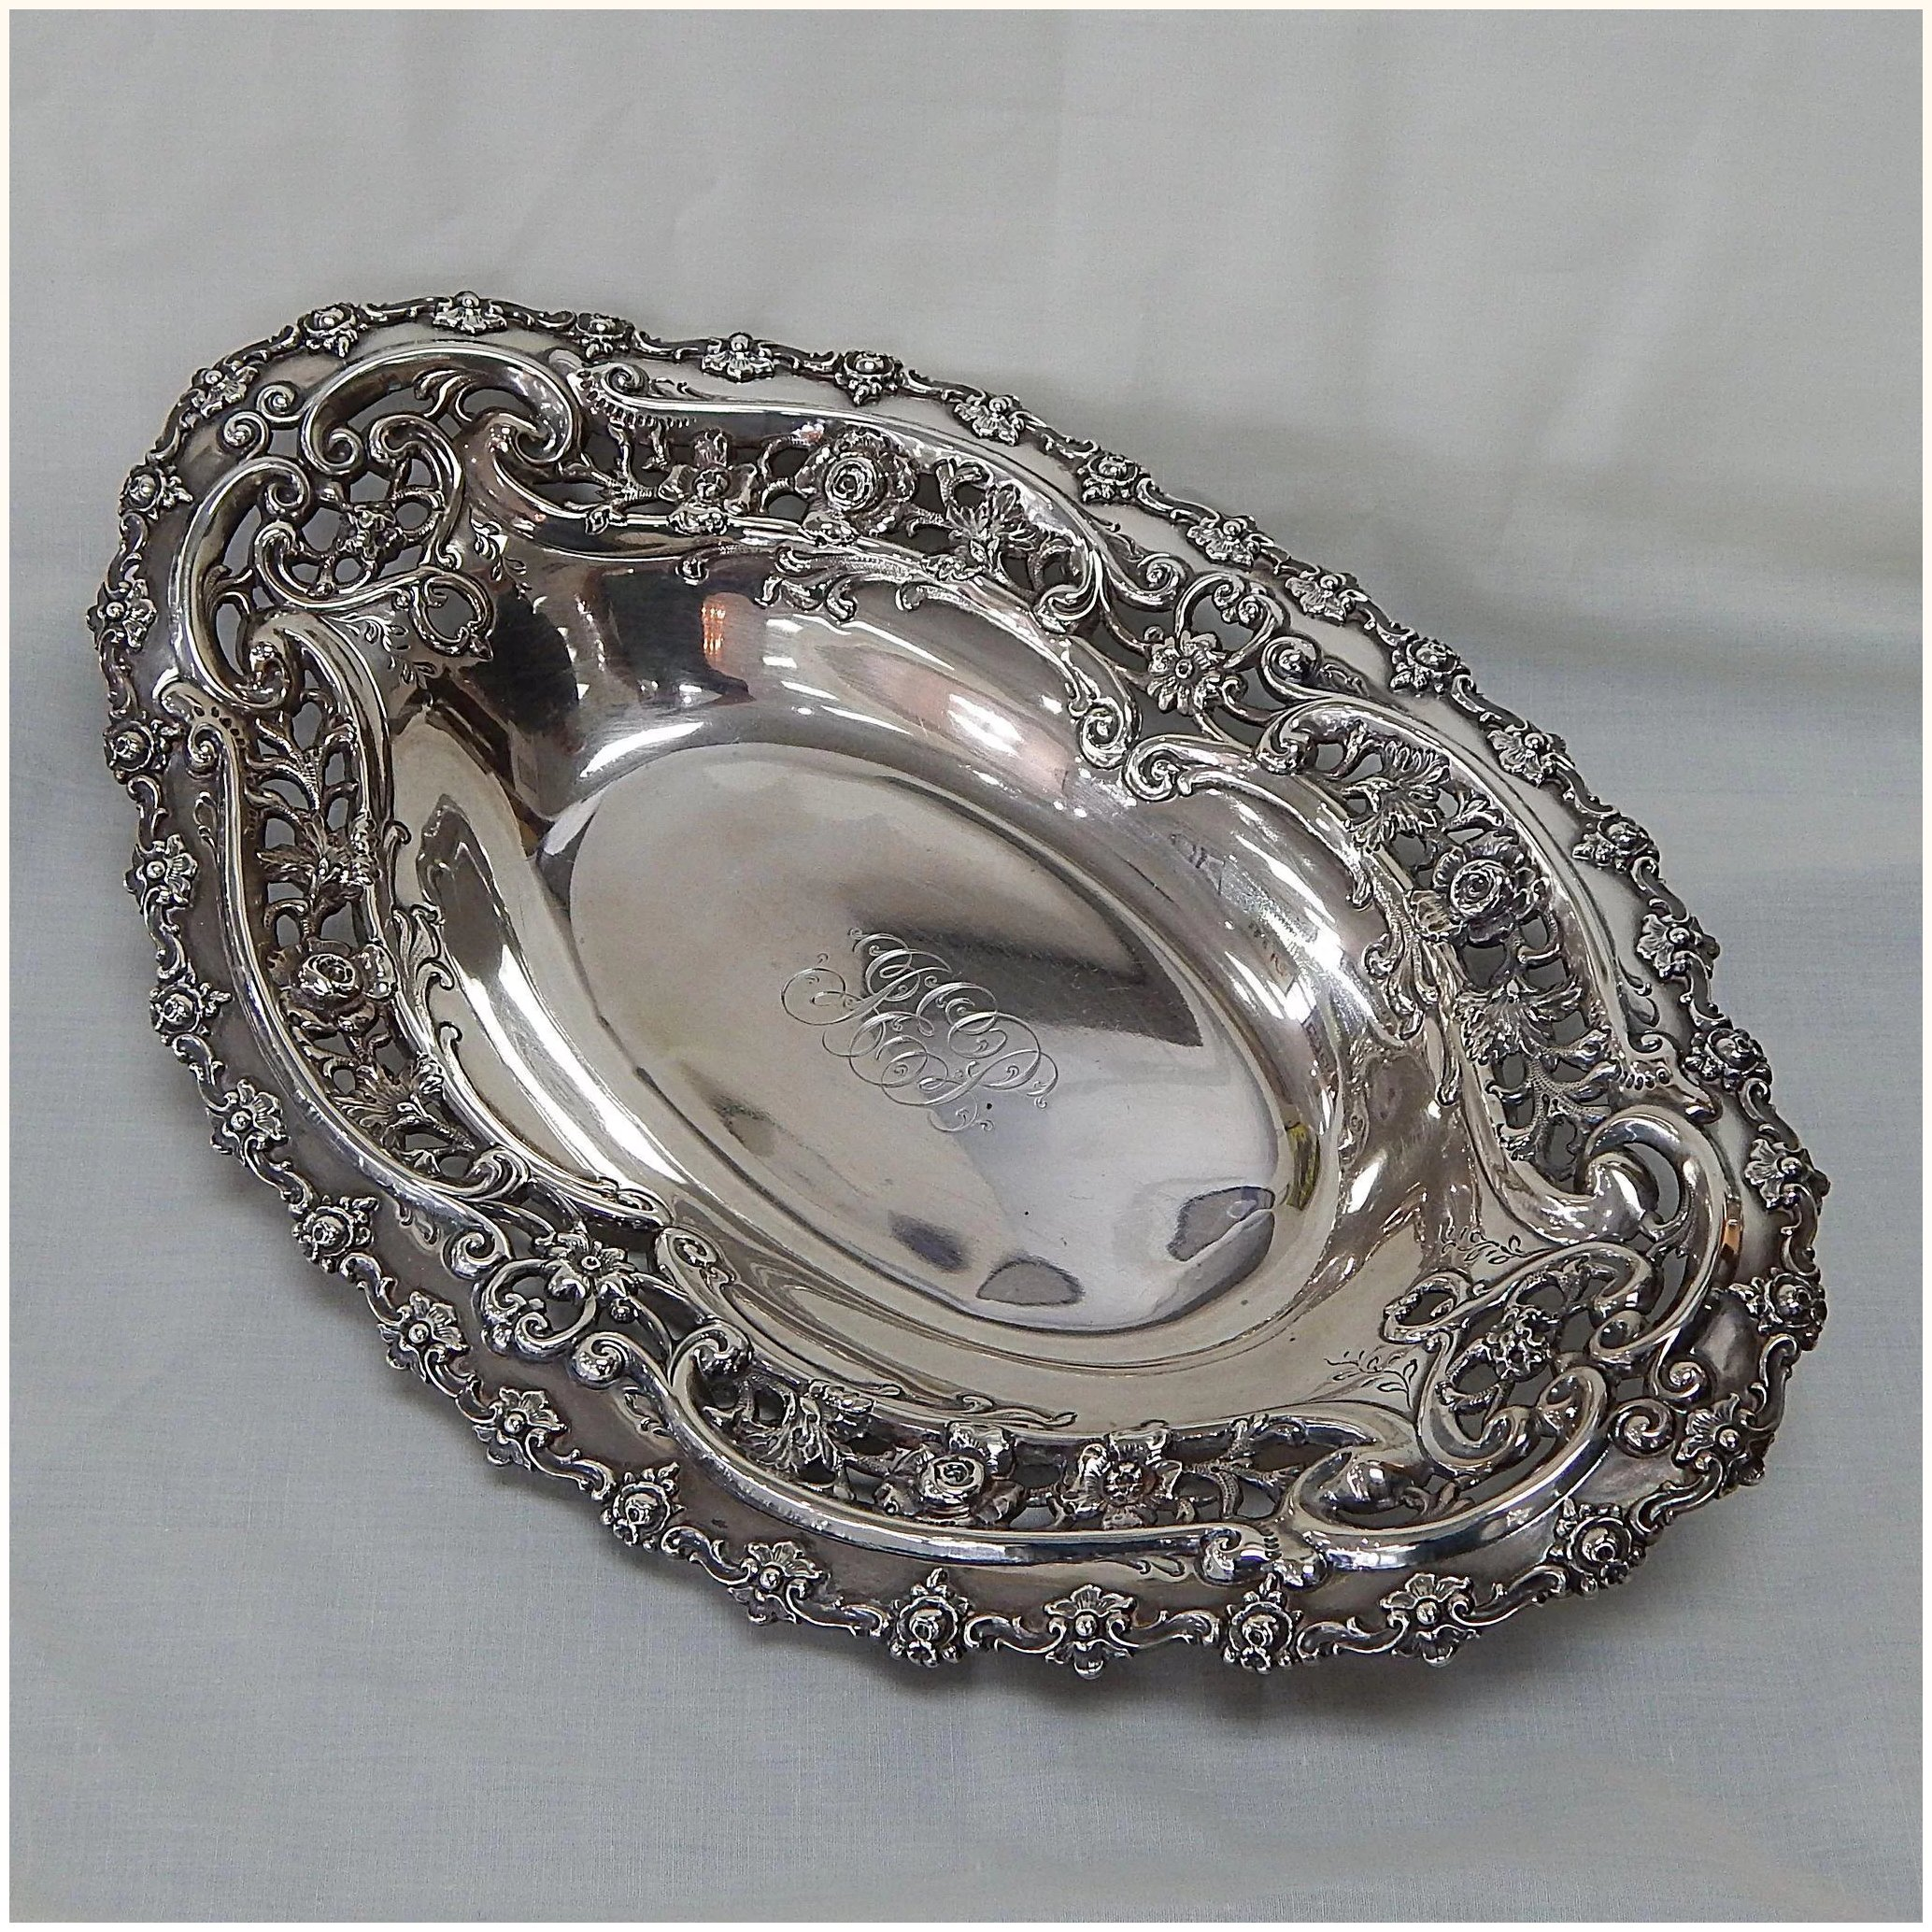 Large Theodore B Starr Sterling Silver Reticulated Bread